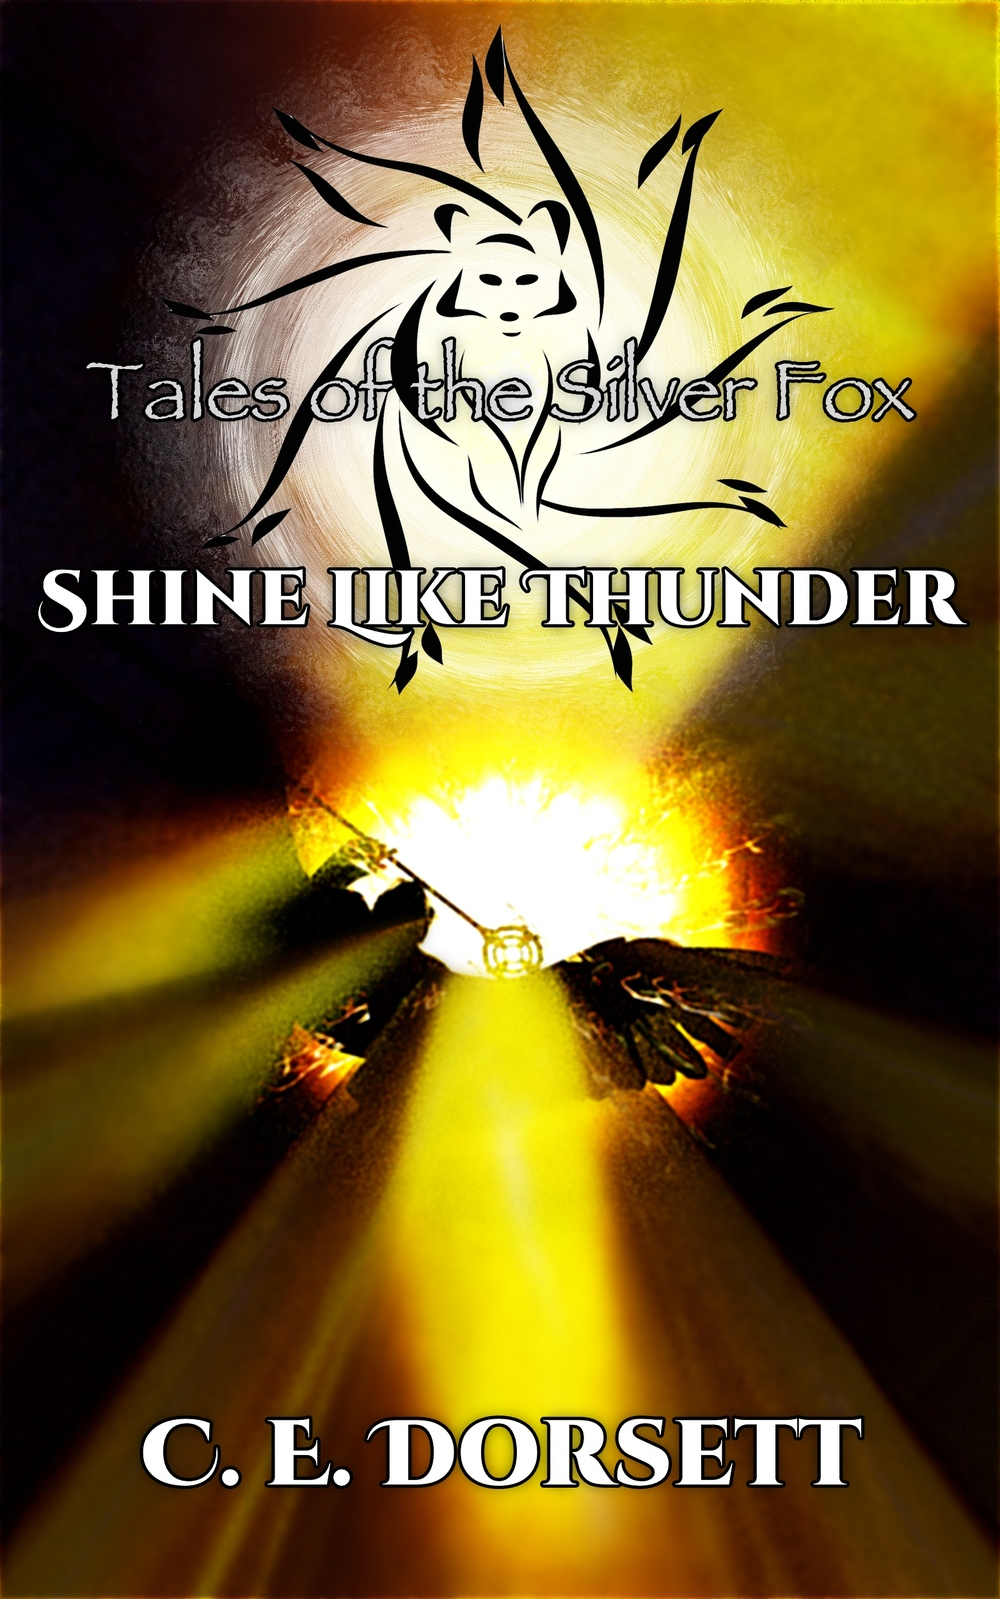 shinelikethunder-cover-new.jpg